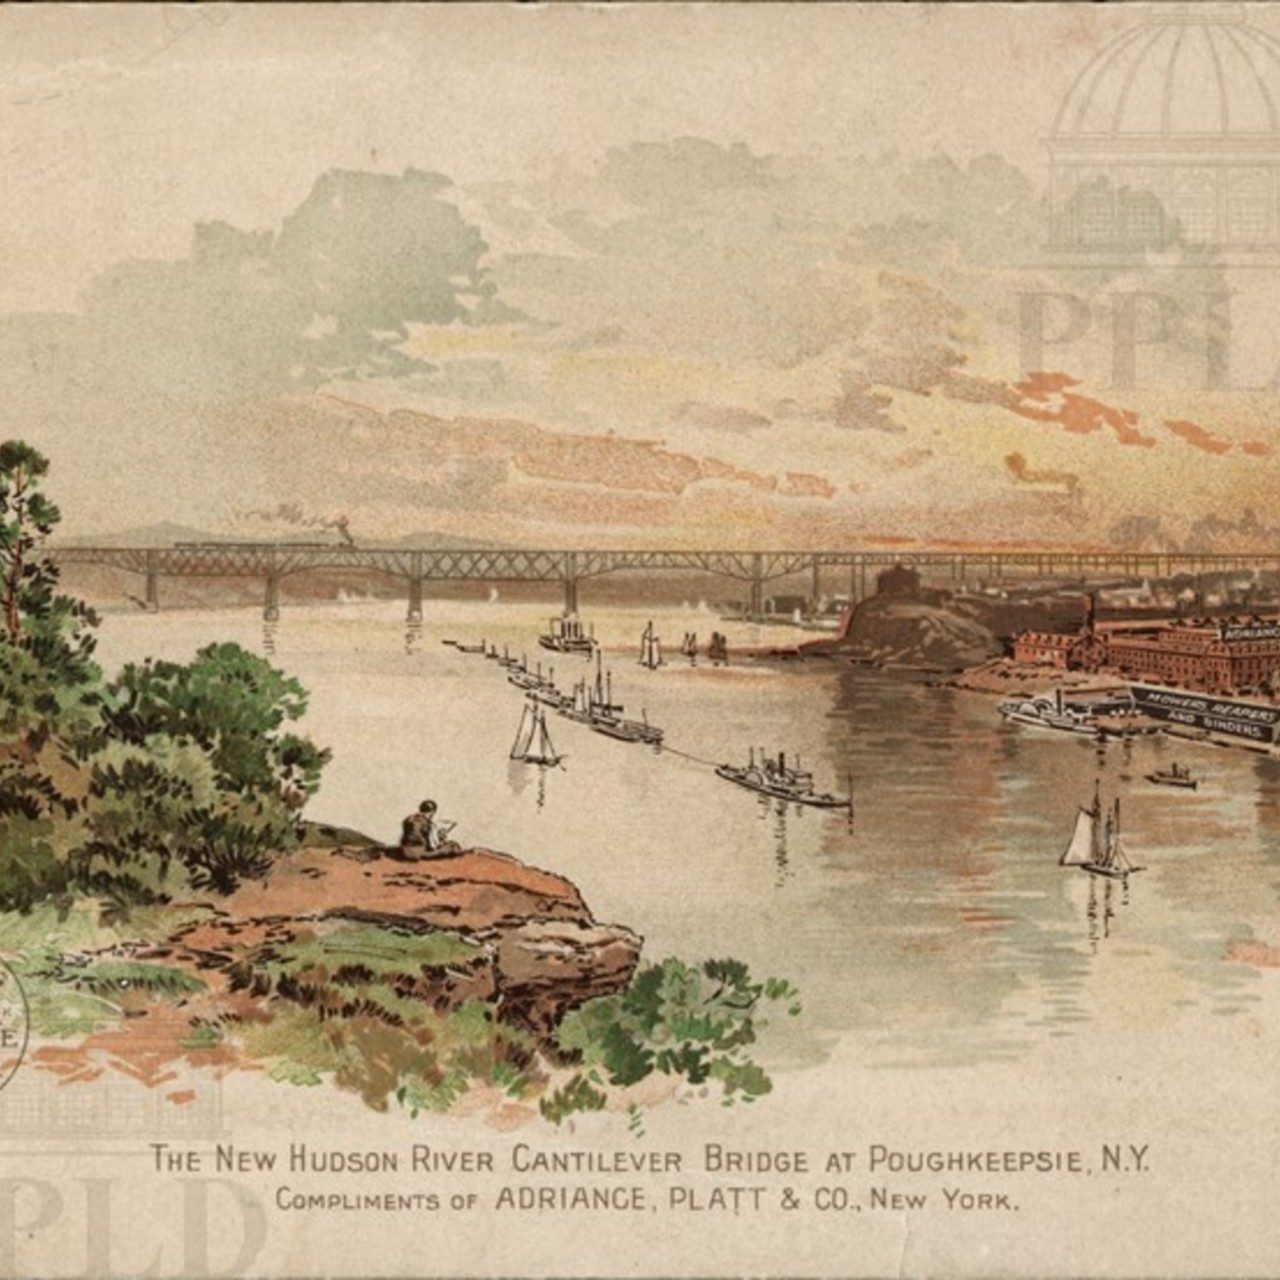 """The New Hudson River Cantilever Bridge at Poughkeepsie N.Y."""